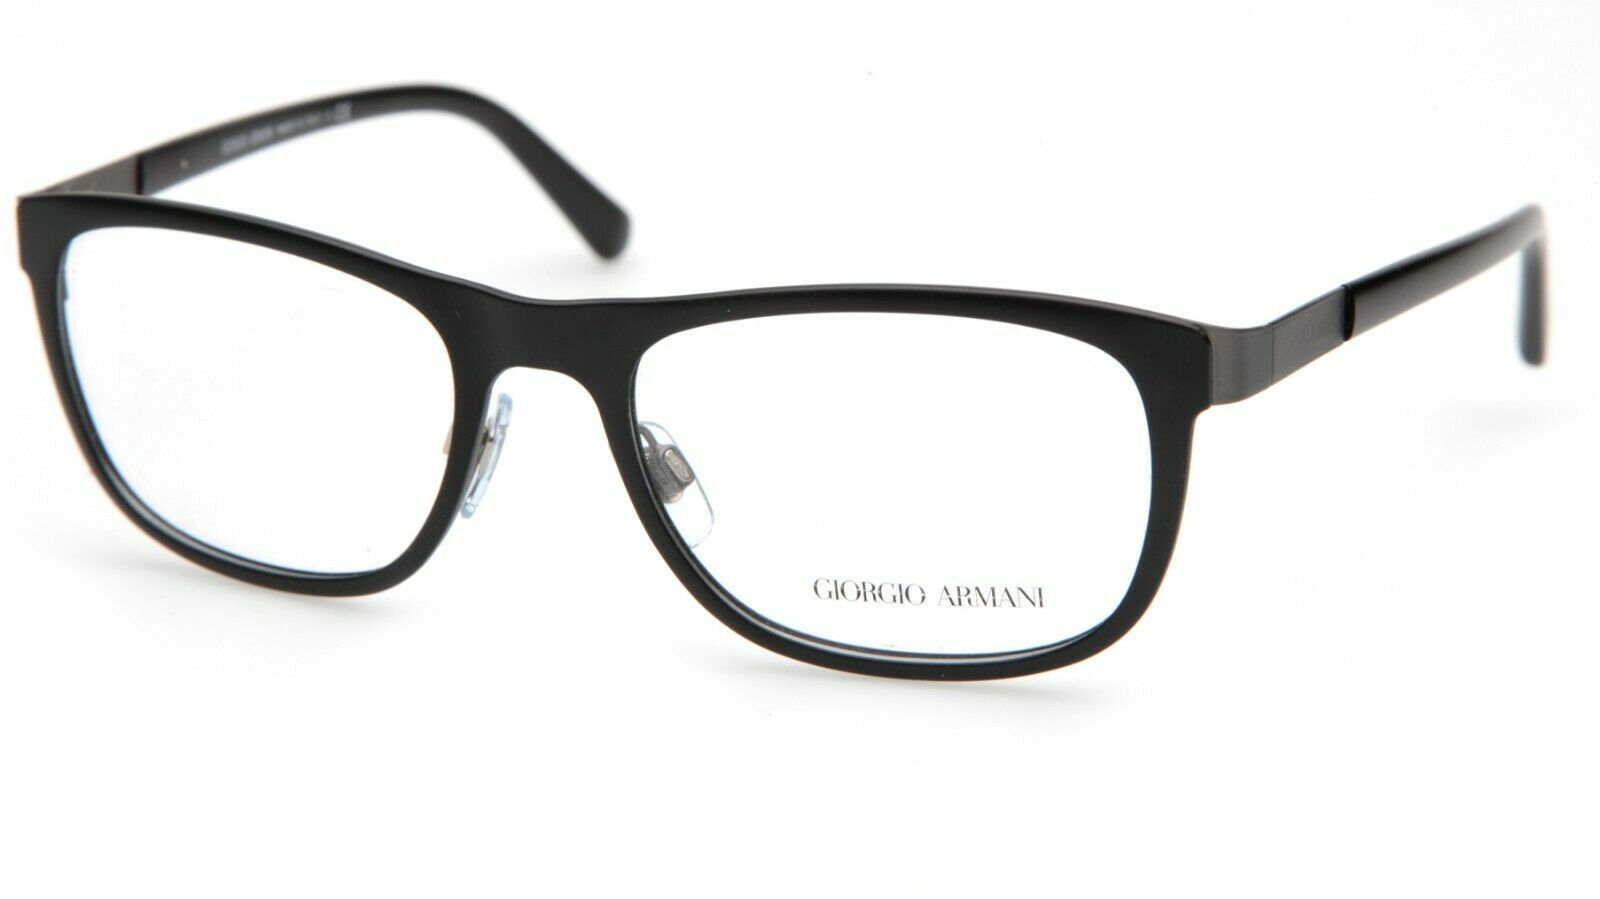 Primary image for New GIORGIO ARMANI AR5012 3003 Black EYEGLASSES FRAME 53-18-140mm B38mm Italy